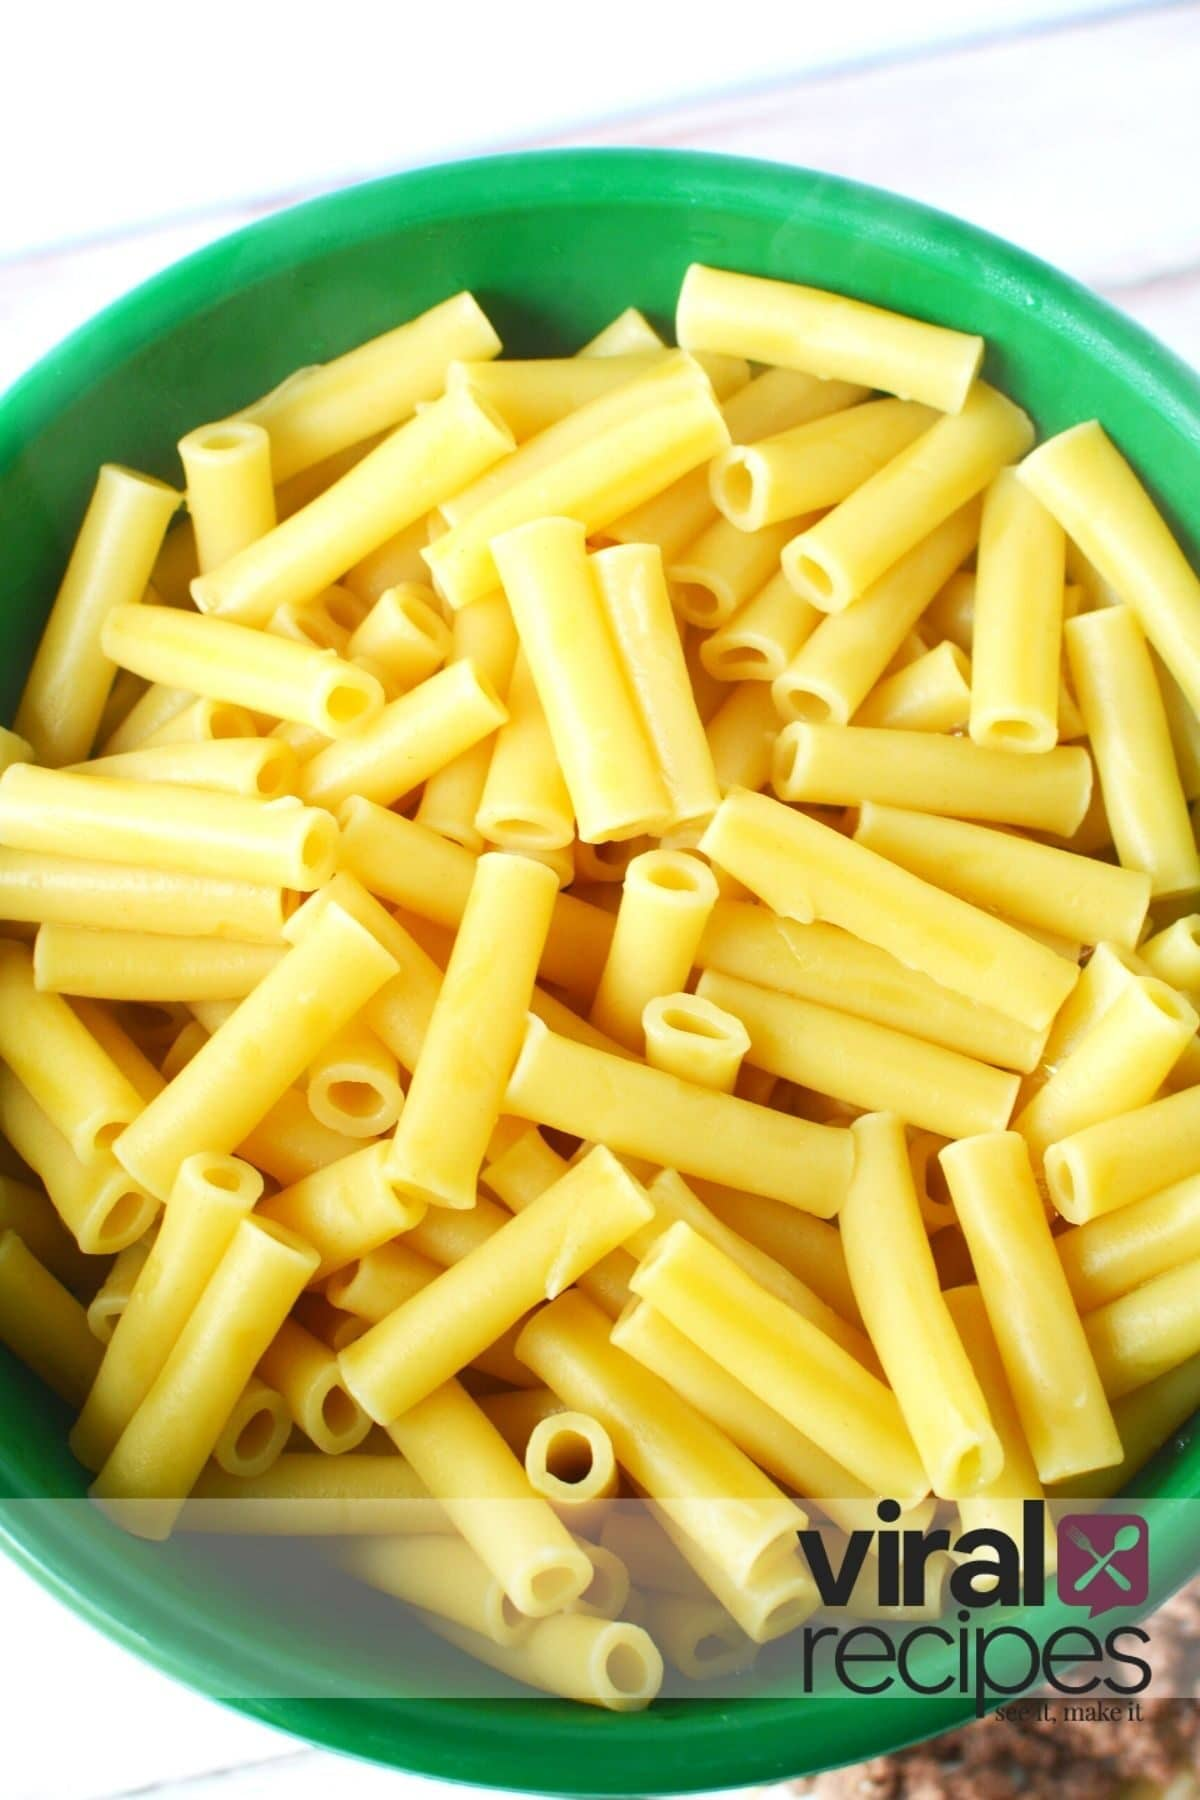 ziti noodles in a strainer